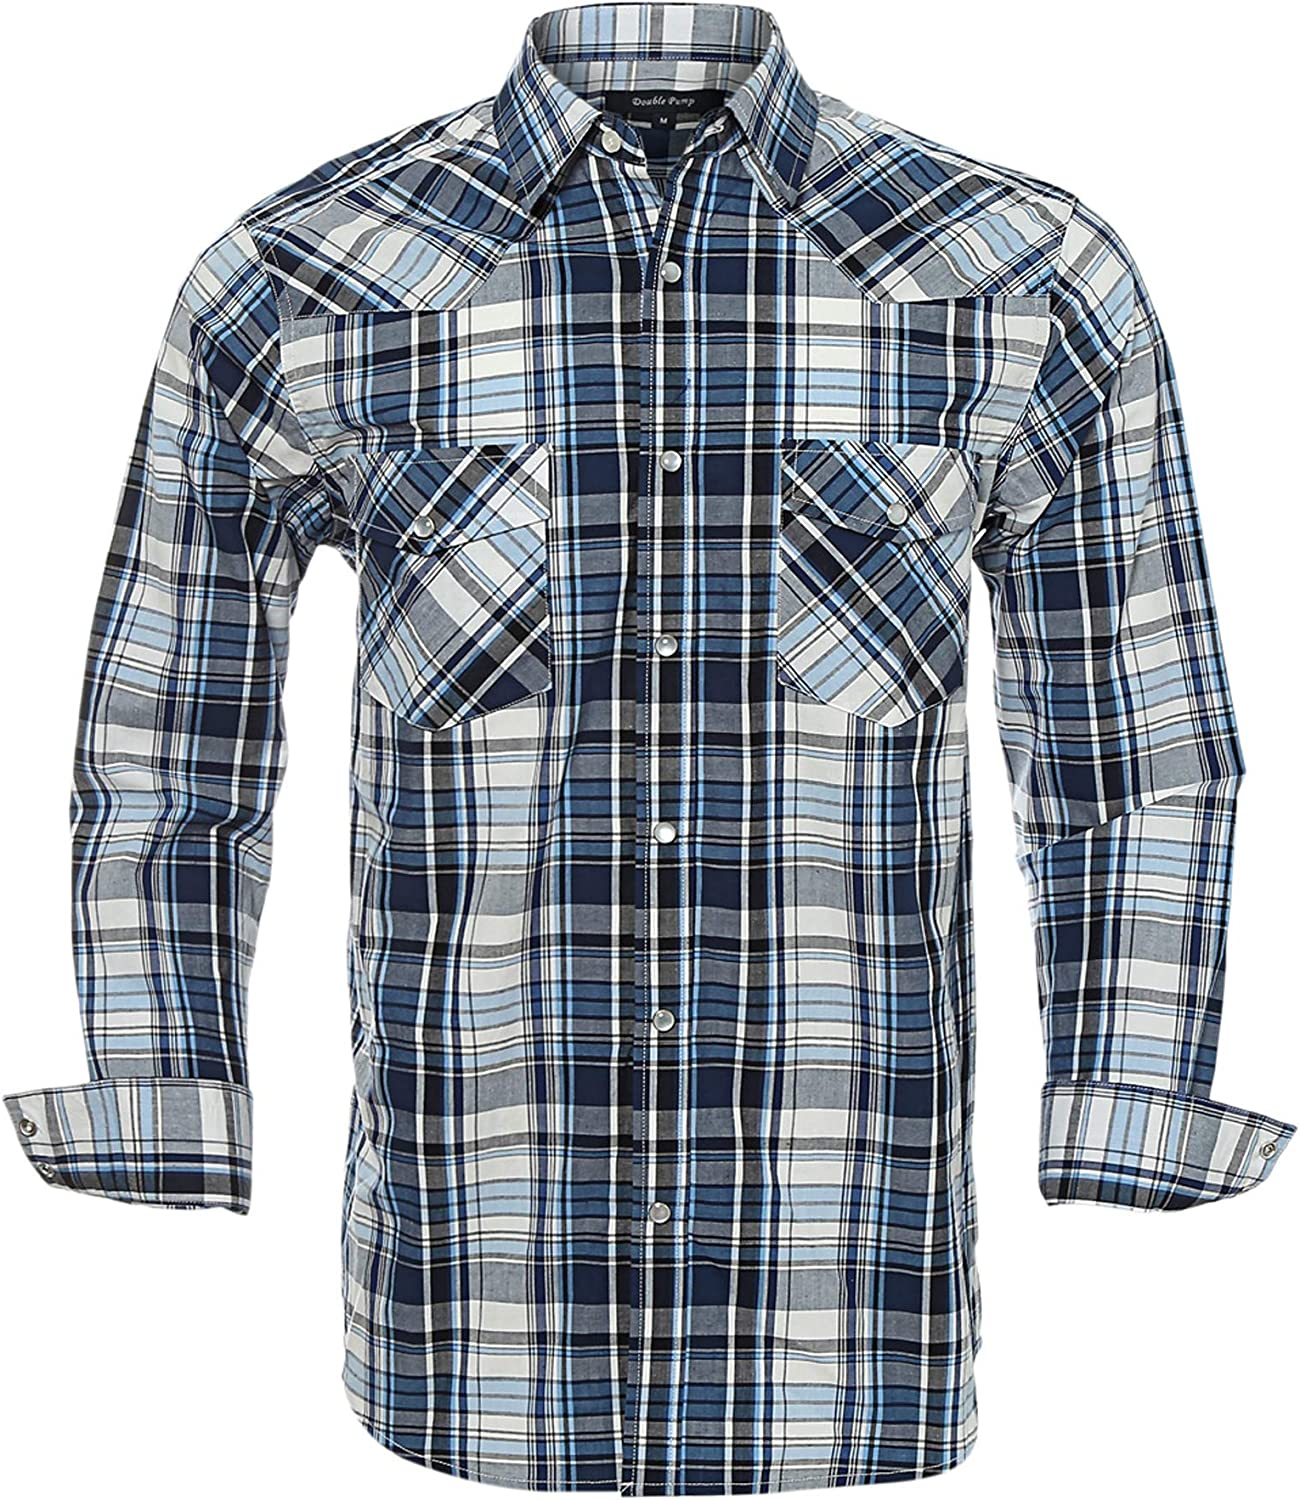 Western Shirts for Men with Snap